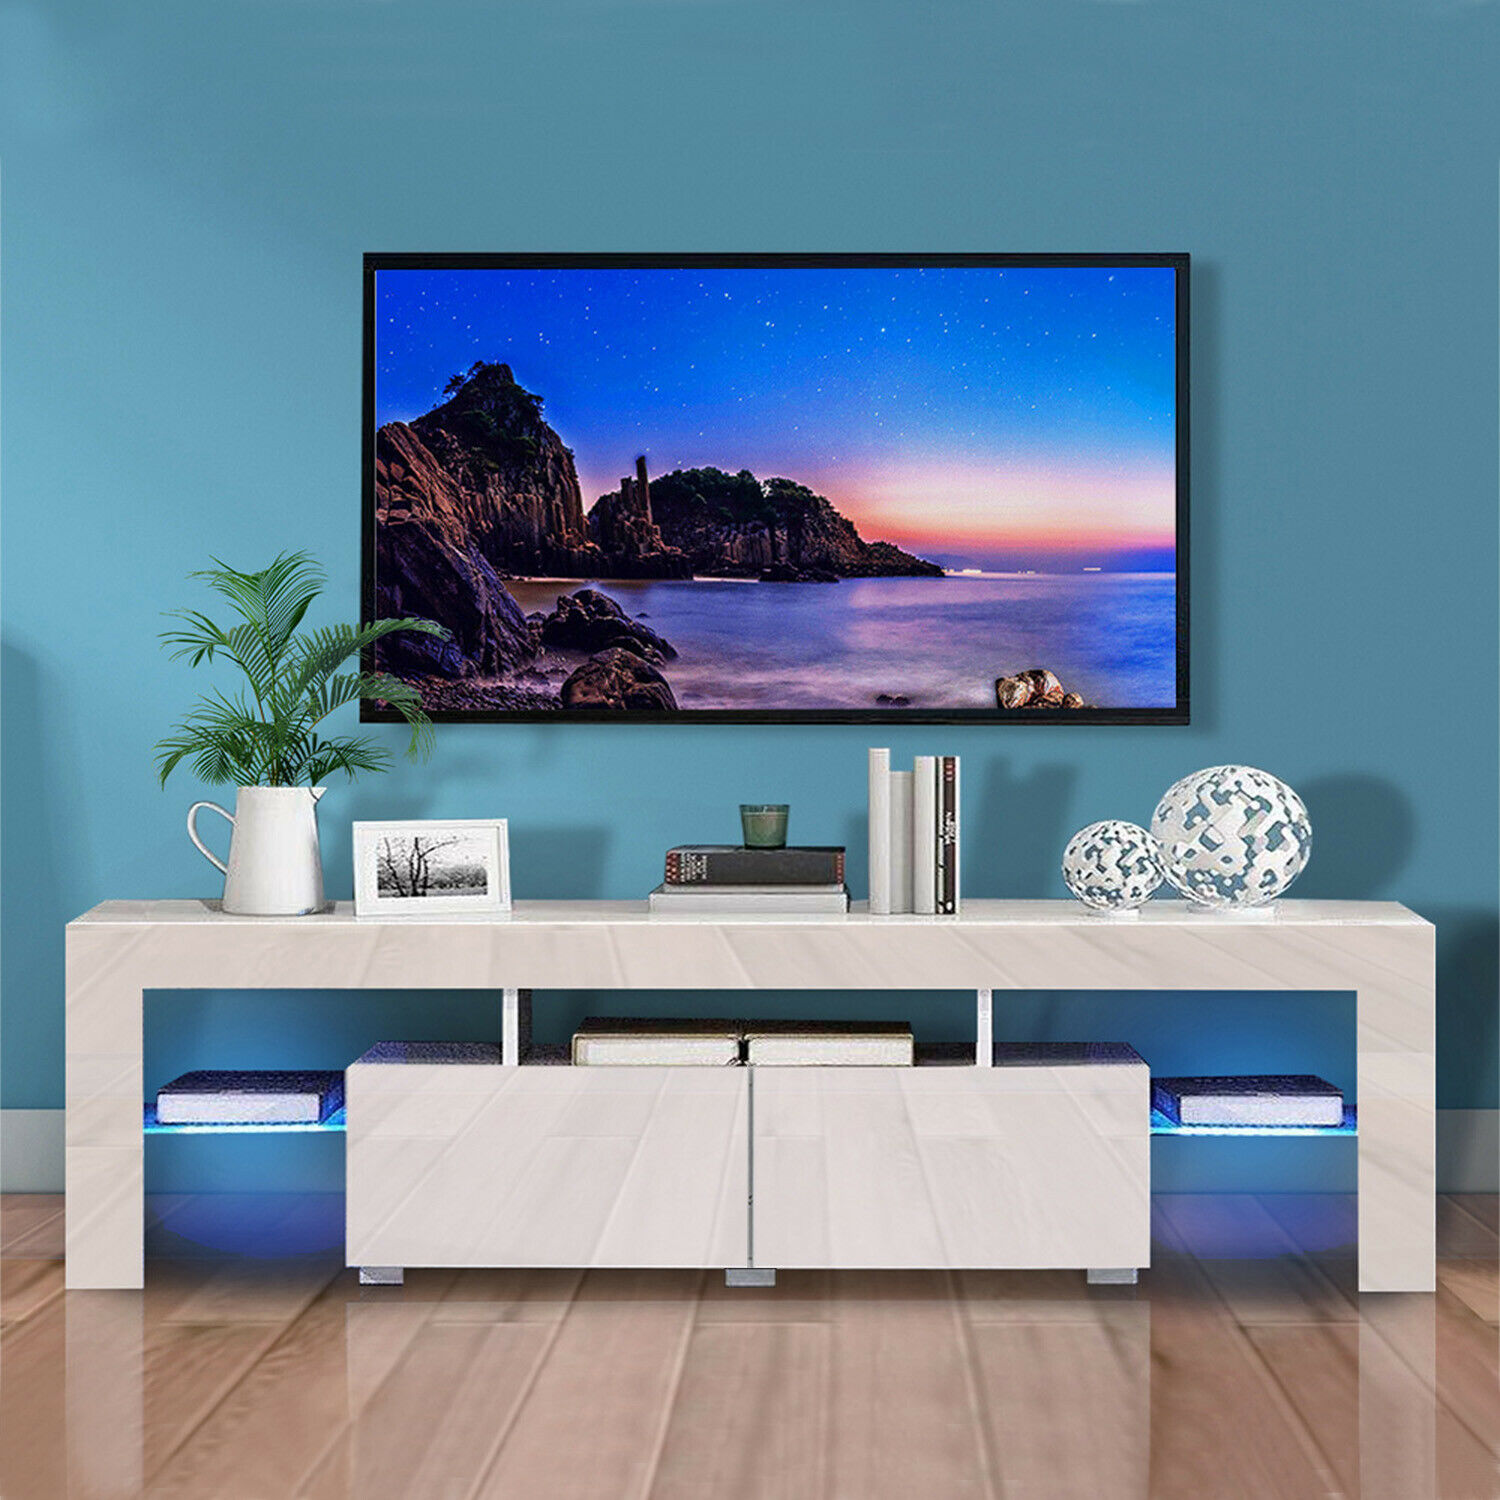 thumbnail 12 - Modern TV Stand Cabinet w/ LED Light for 65 Inch TV Media Storage Console Table